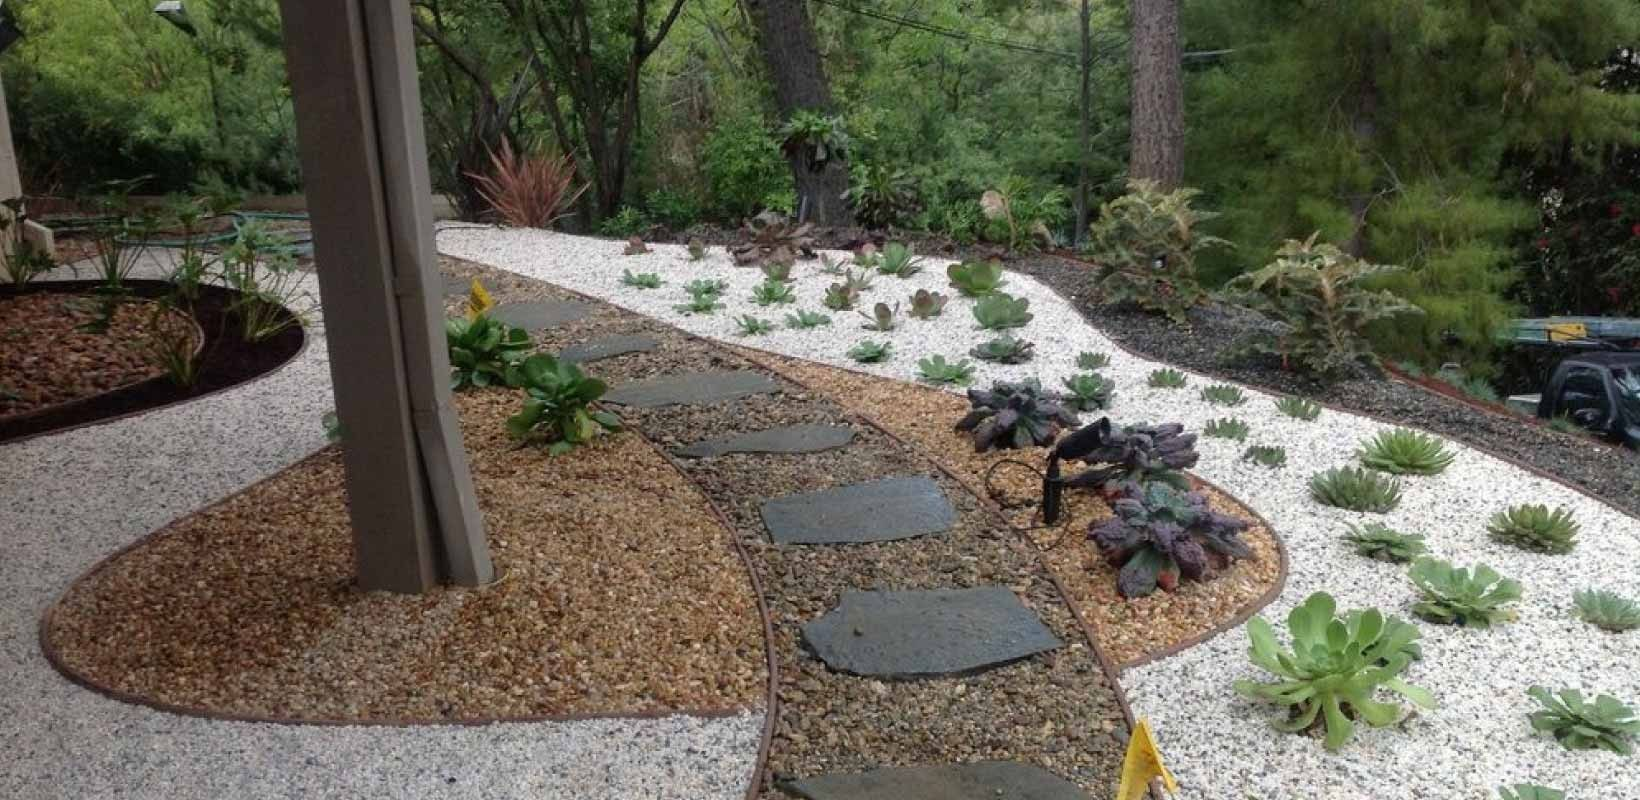 Magnificent Backyard Landscaping Ideas With Gravel Gravel Landscaping Small Backyard Gardens Landscaping With Rocks